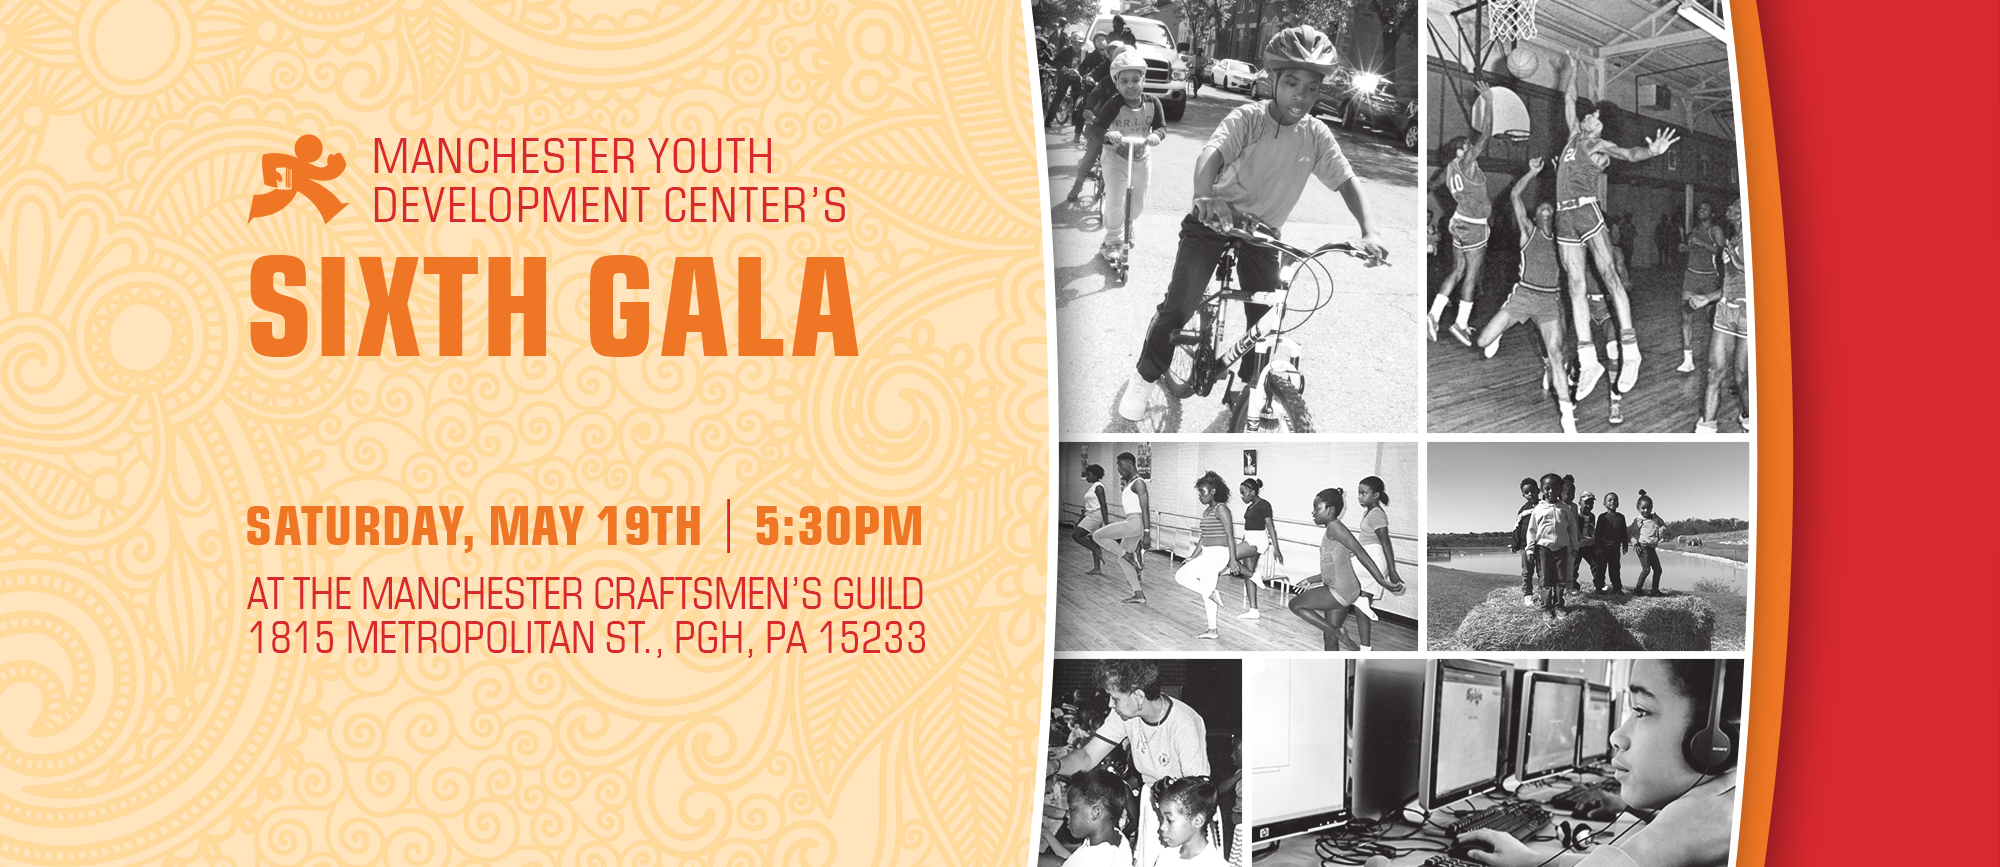 Manchester Youth Development Center's Sixth Gala